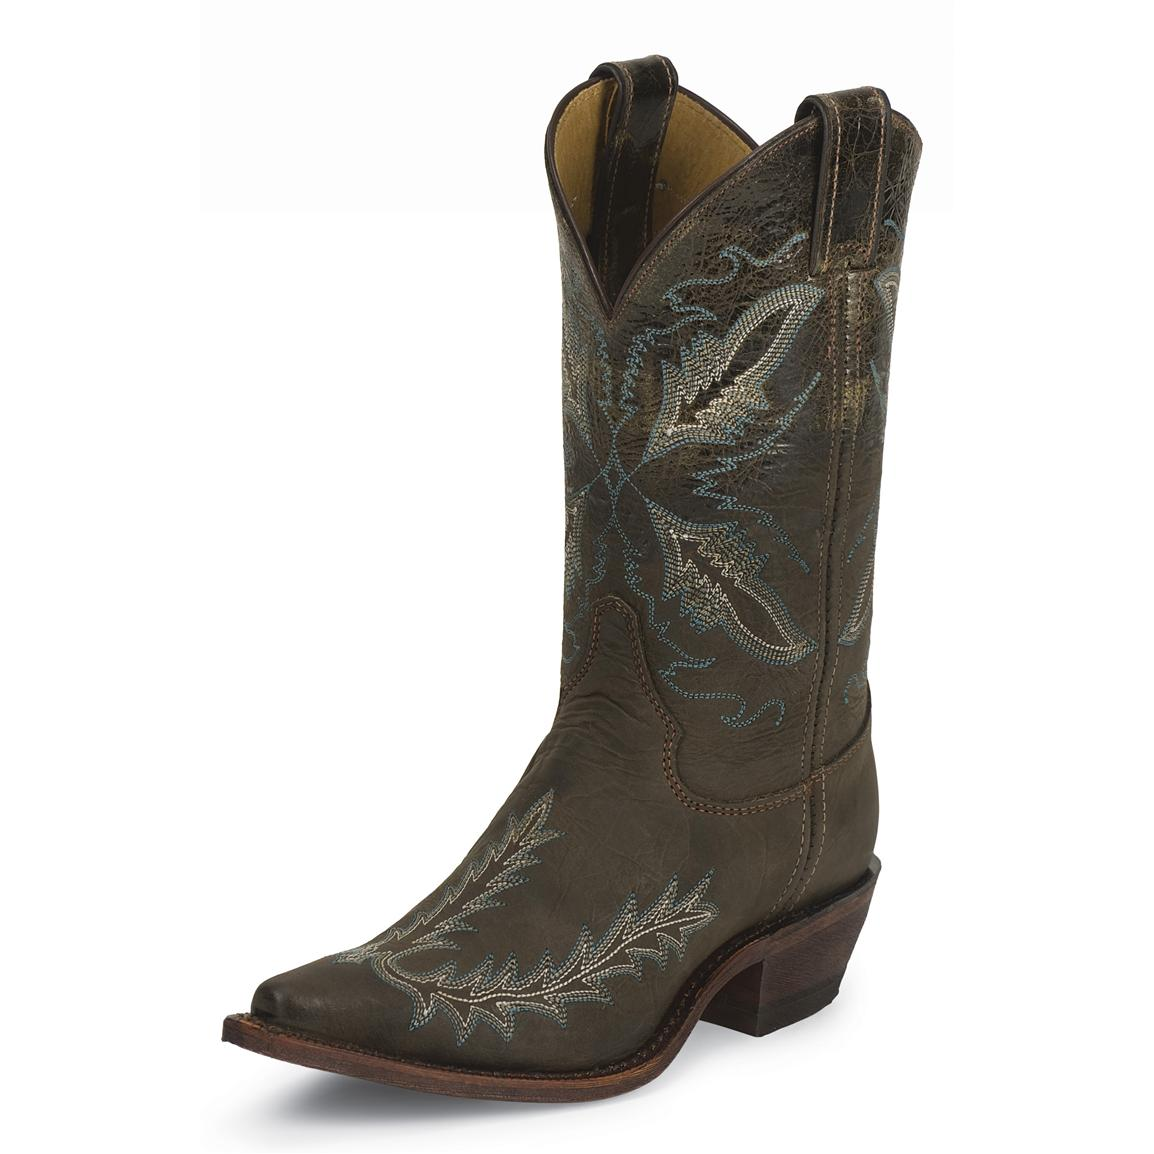 Women's Justin® 11 inch Bent Rail Western Boots, Chocolate